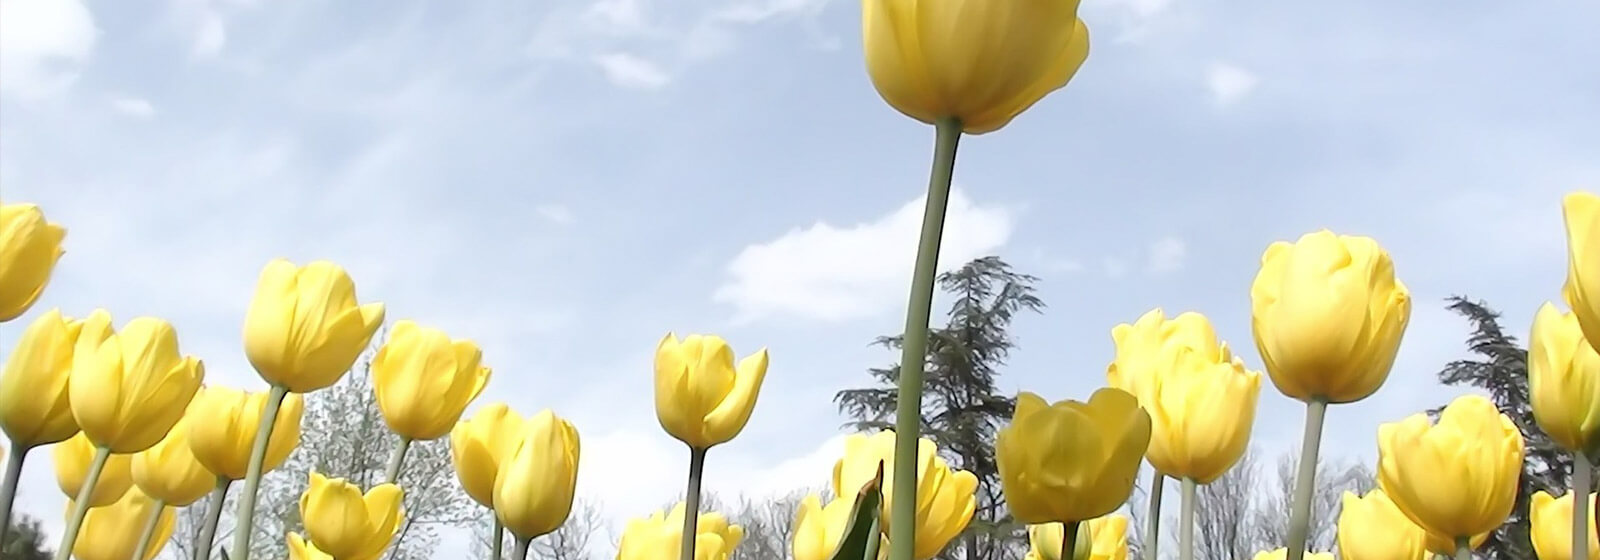 Tulips image slide